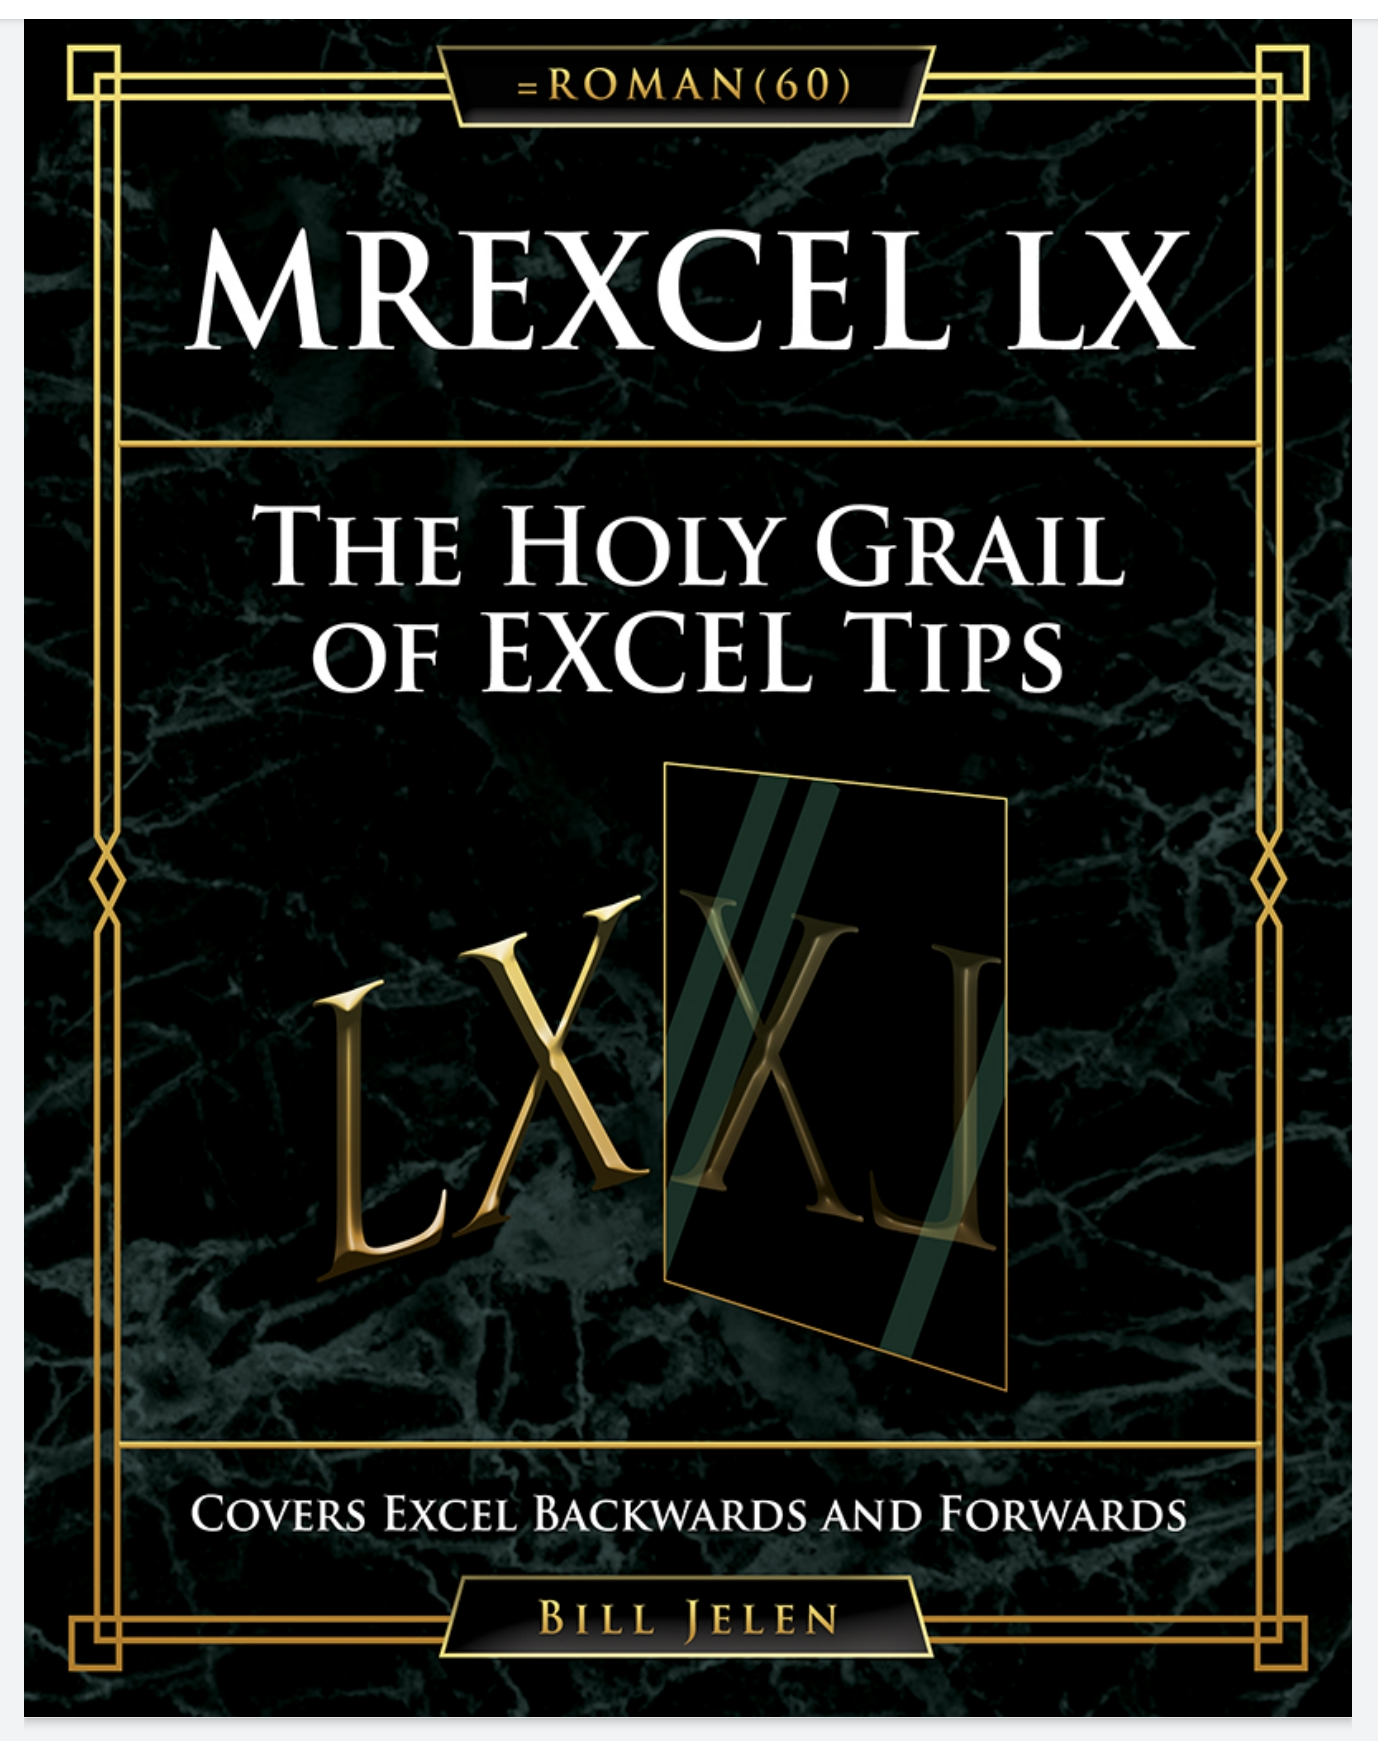 MrExcel LX The Holy Grail of Excel Tips: Covers Excel Backwards and Forwards 2021